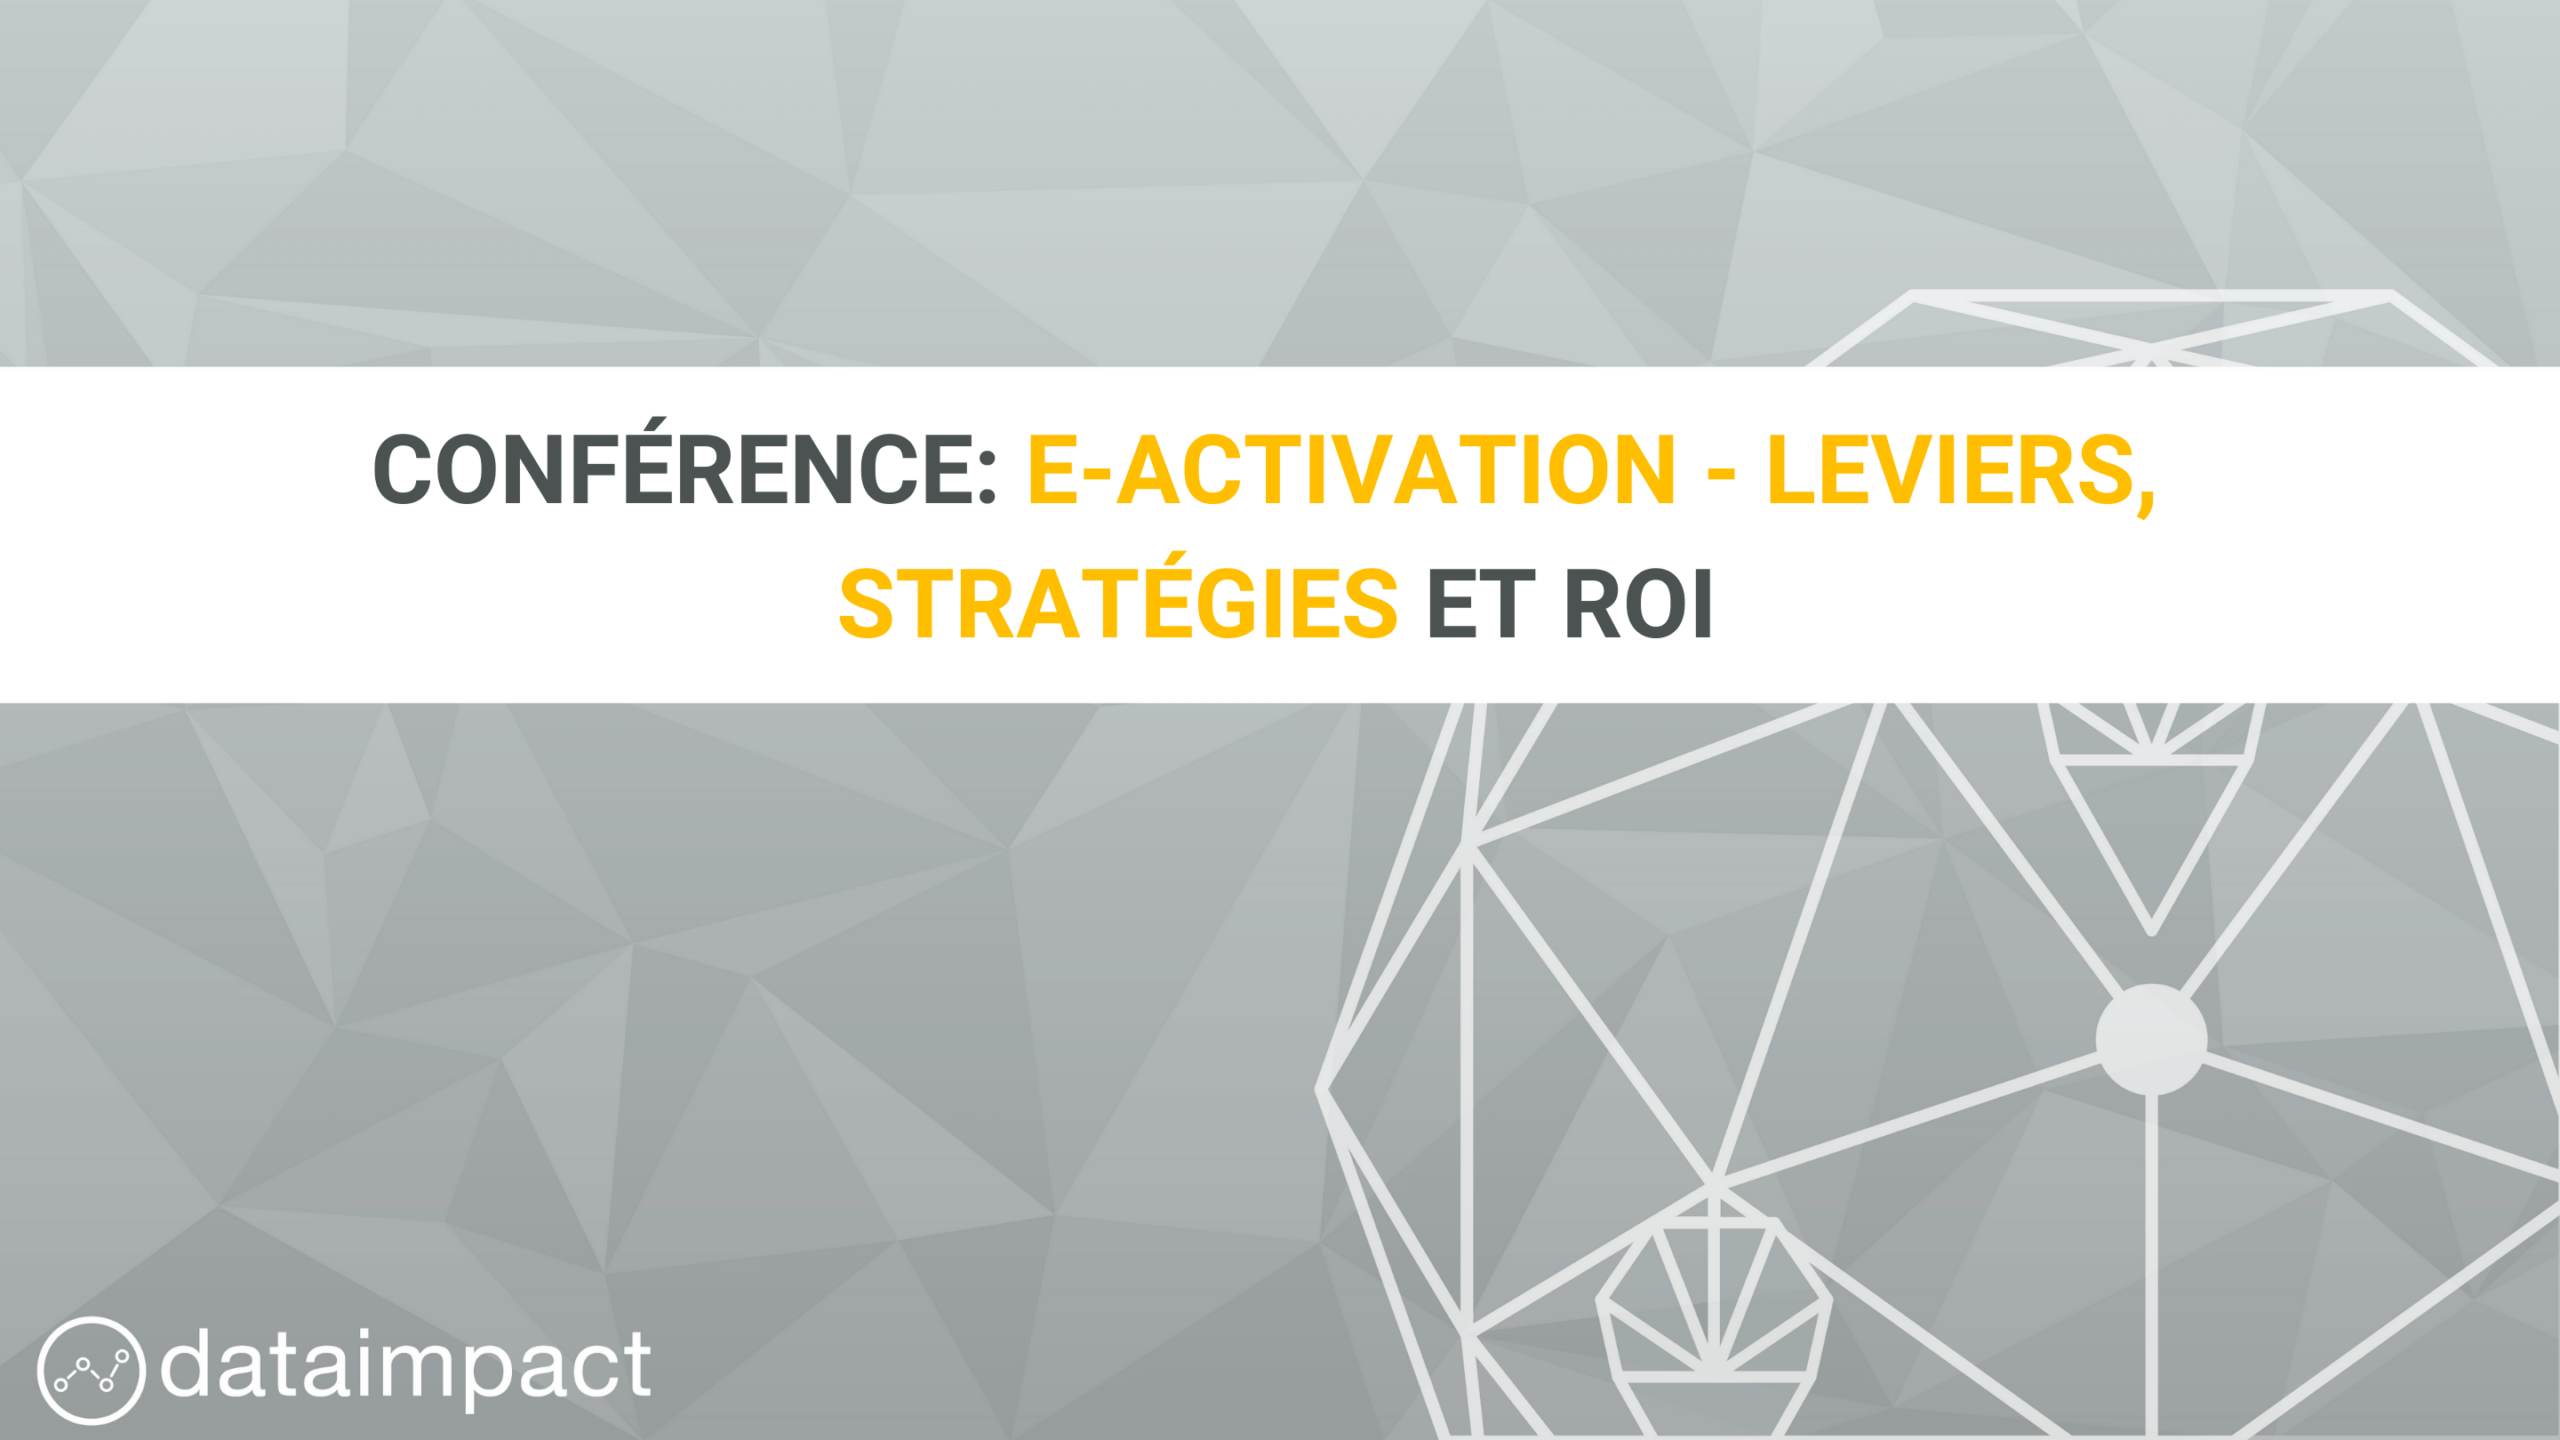 conférence e-activation leviers strategies roi e-retail media institut du commerce